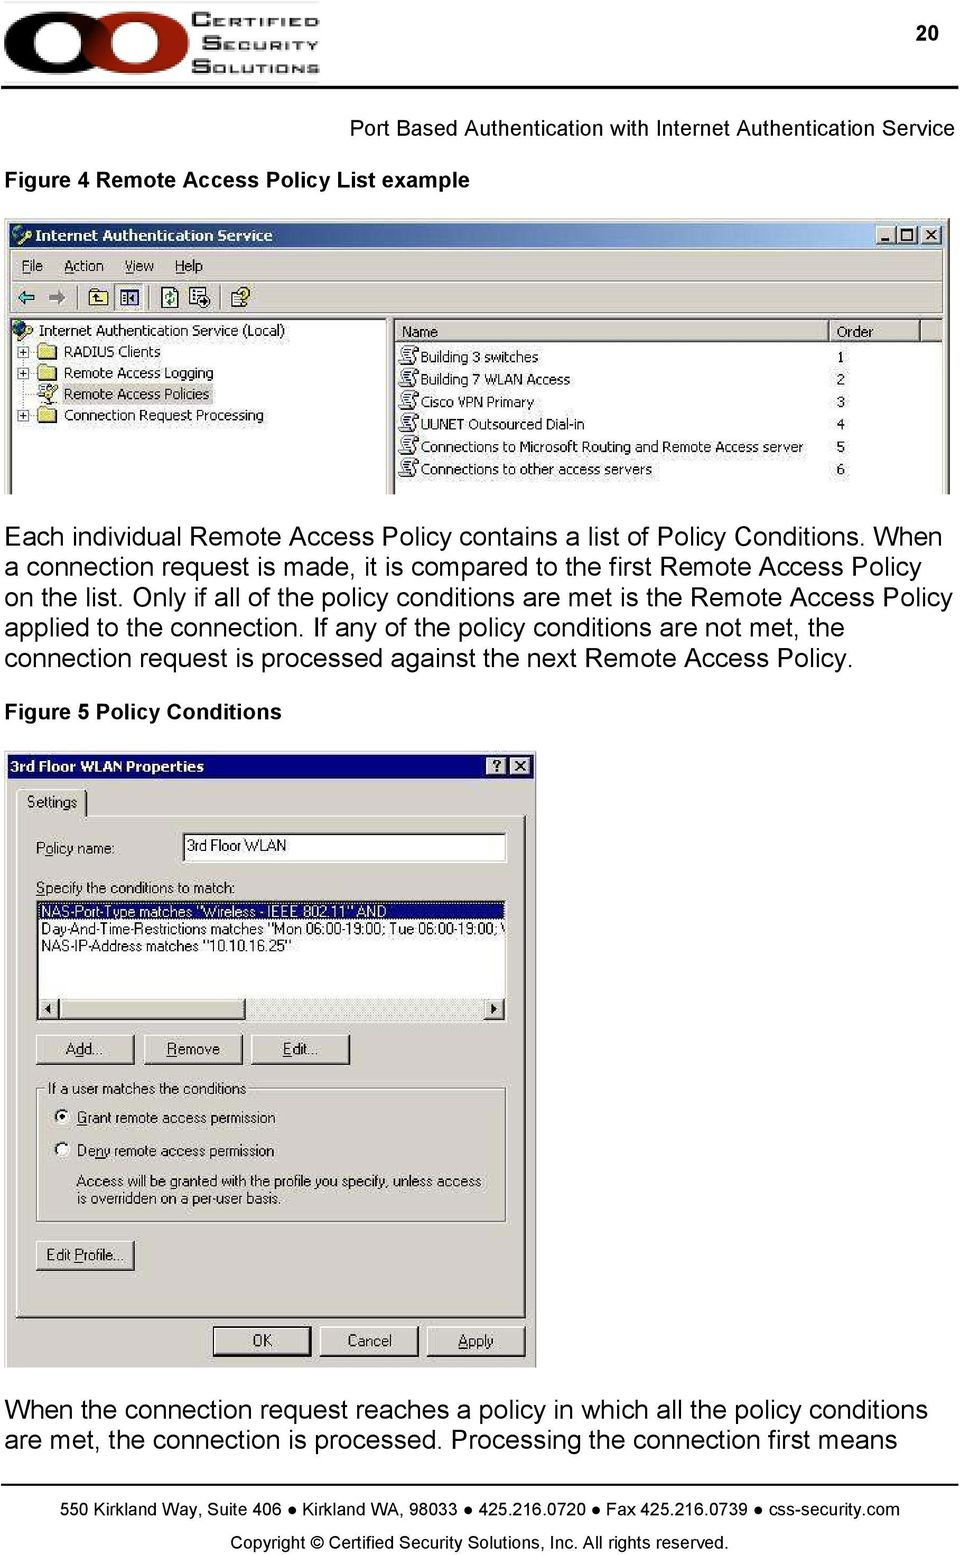 Only if all of the policy conditions are met is the Remote Access Policy applied to the connection.